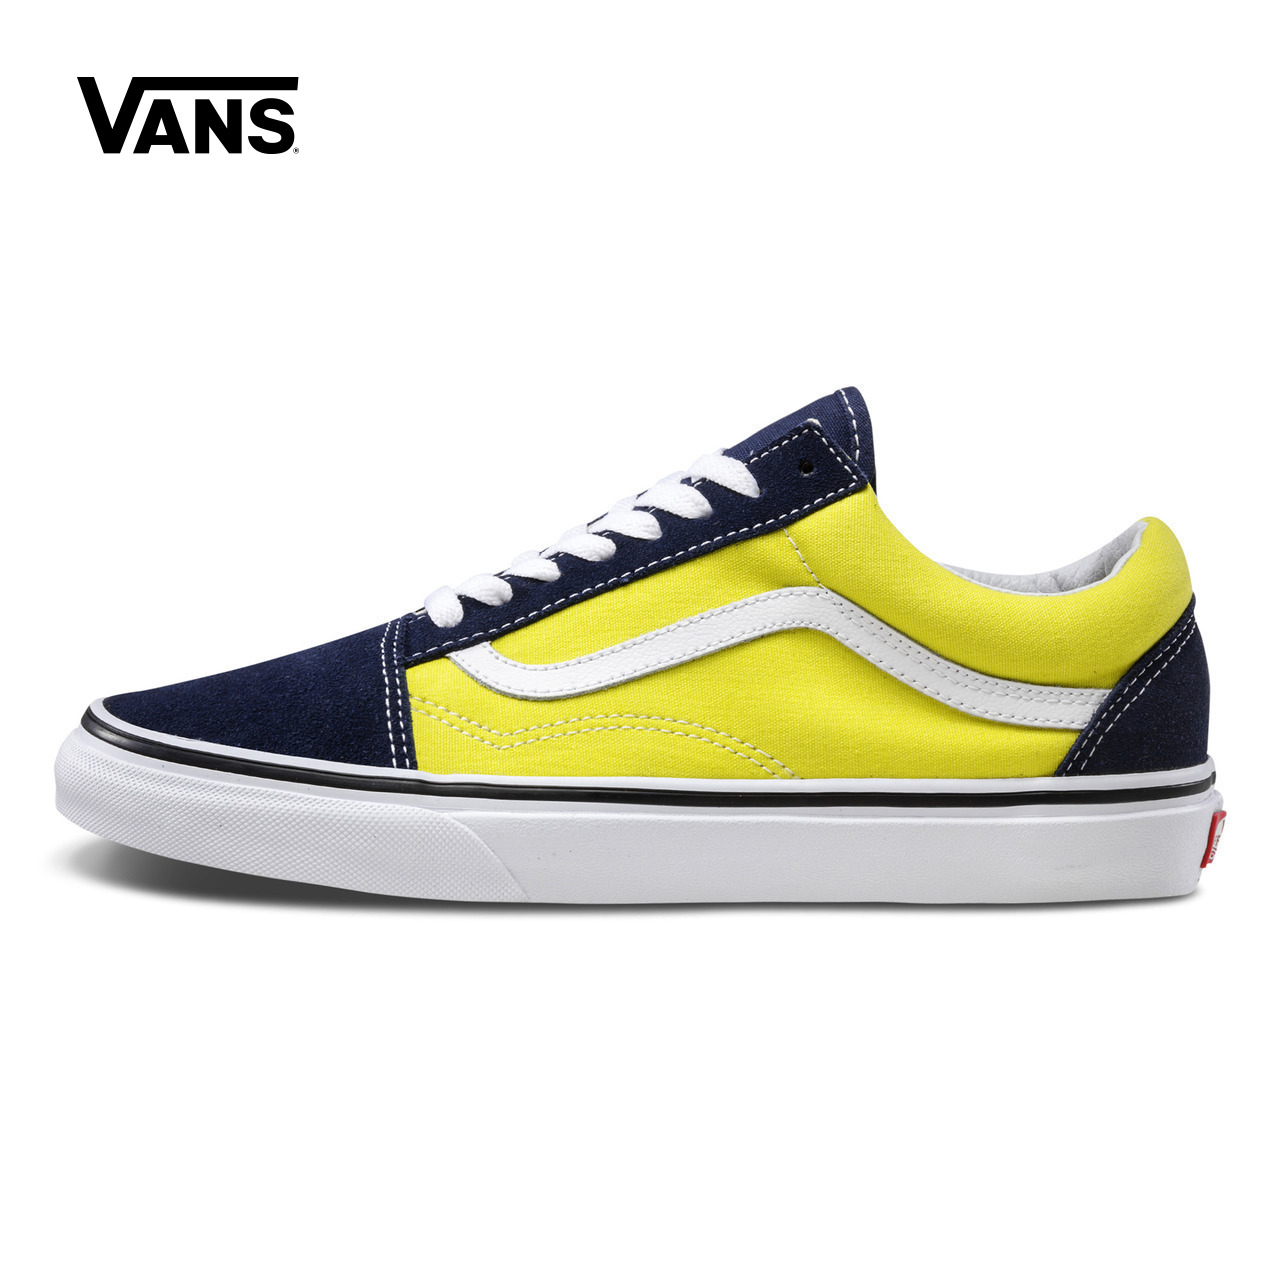 Original New Arrival Vans Mens & Womens Classic Old Skool Low-top Skateboarding Shoes Sneakers Canvas Sport Outdoor VN0A38G1R1M original new arrival van classic unisex skateboarding shoes old skool sport outdoor canvas comfortable sneakers vn000d3hw00